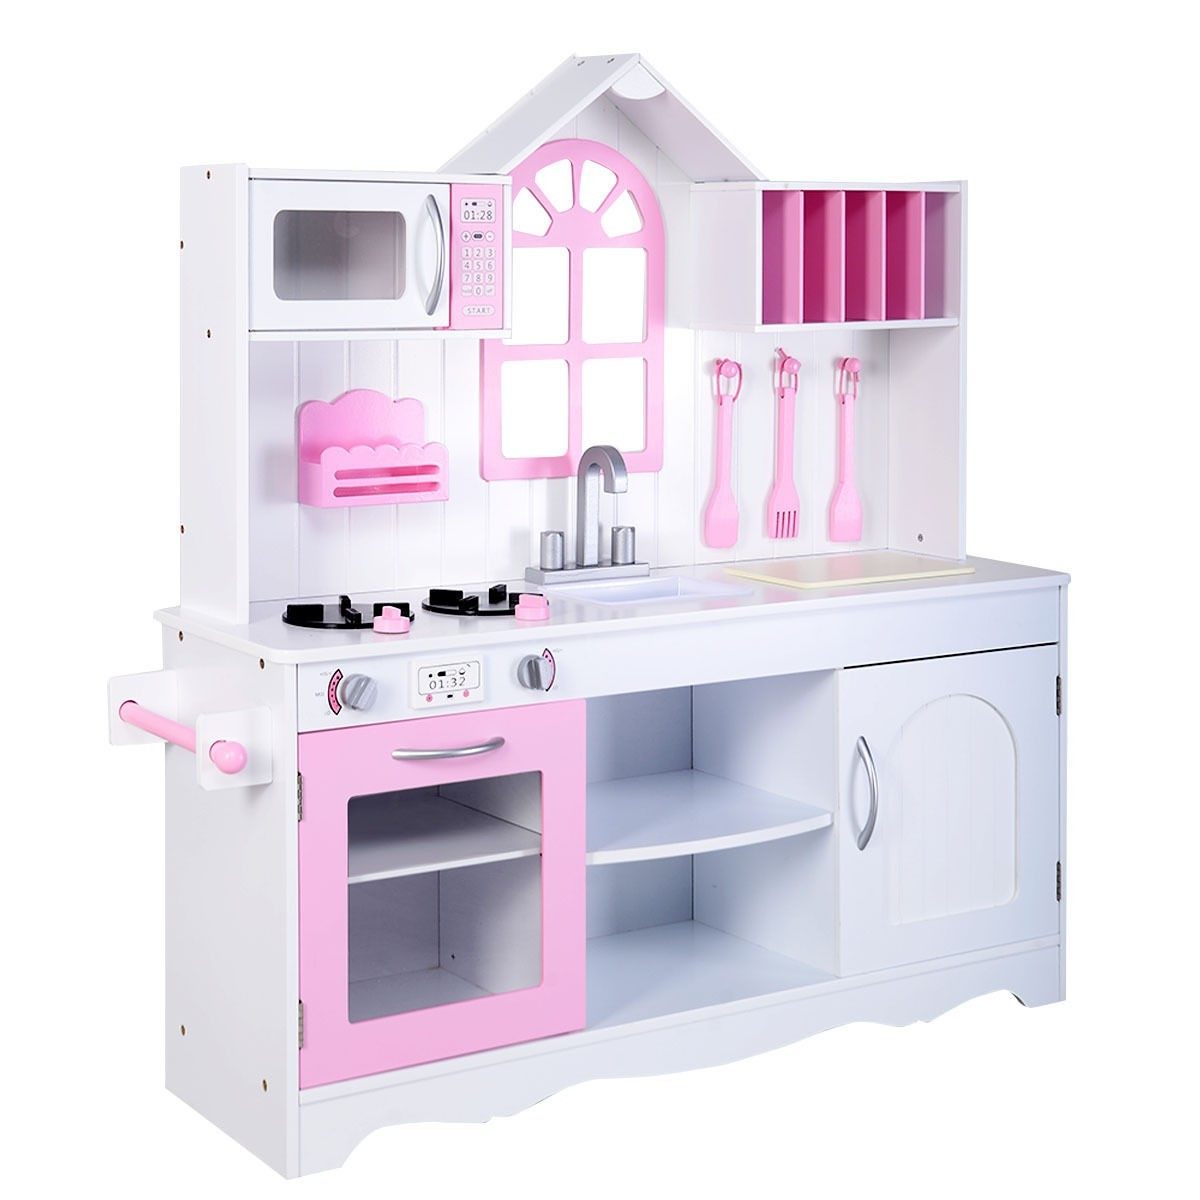 Wood Toy Kitchen Kids Cooking Pretend Play Set by